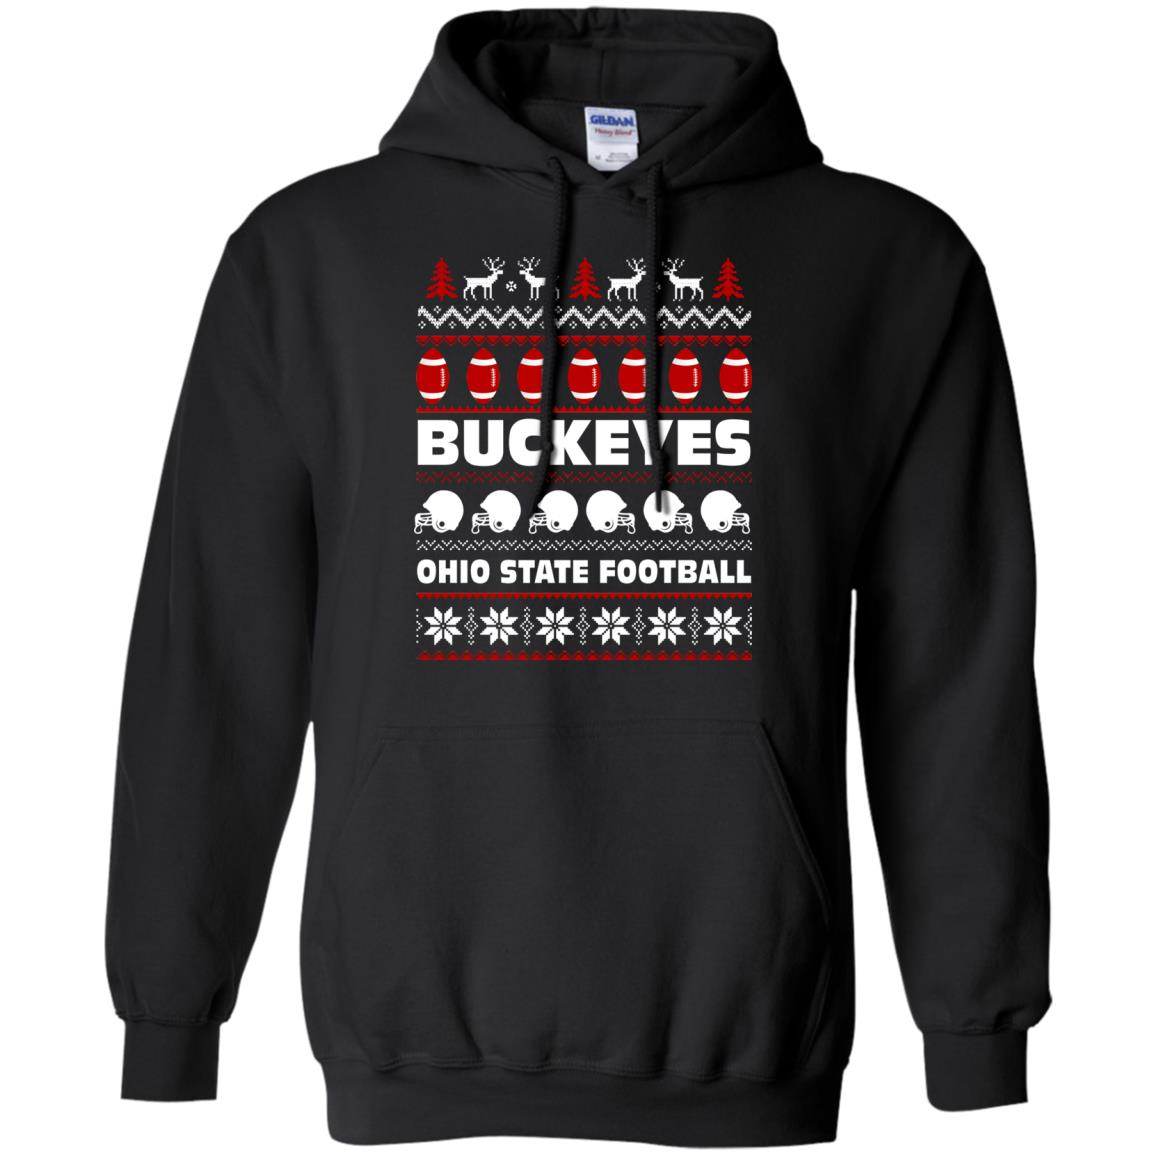 Buckeyes Ohio State Football Ugly Christmas Sweater, Hoodie - Icestork